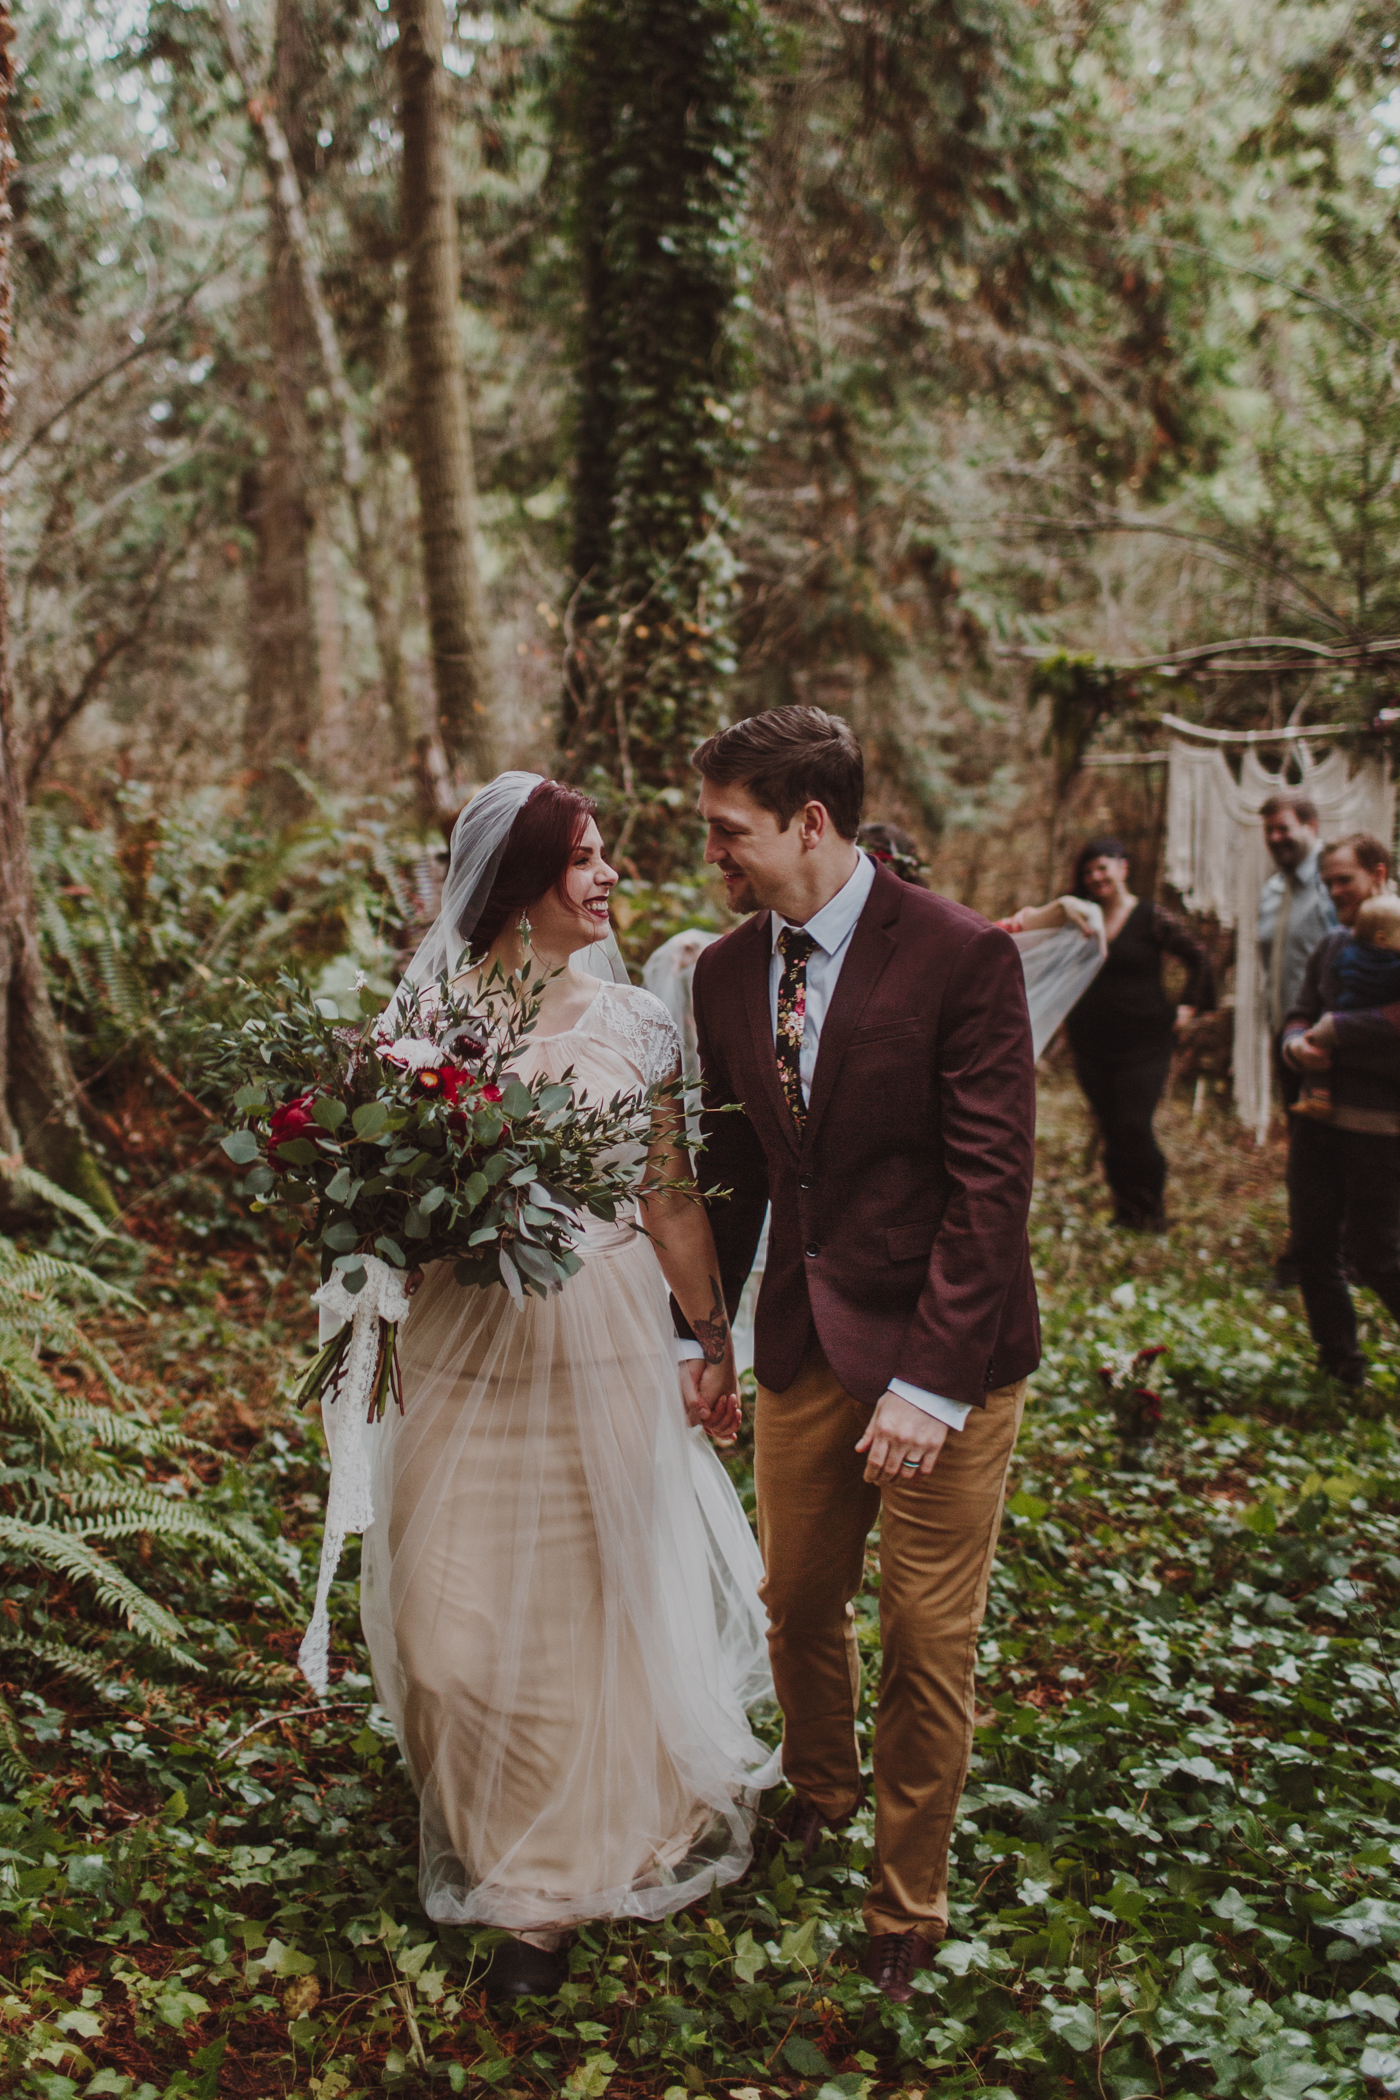 Olympic Peninsula Elopement-LizMorrow-89.jpg